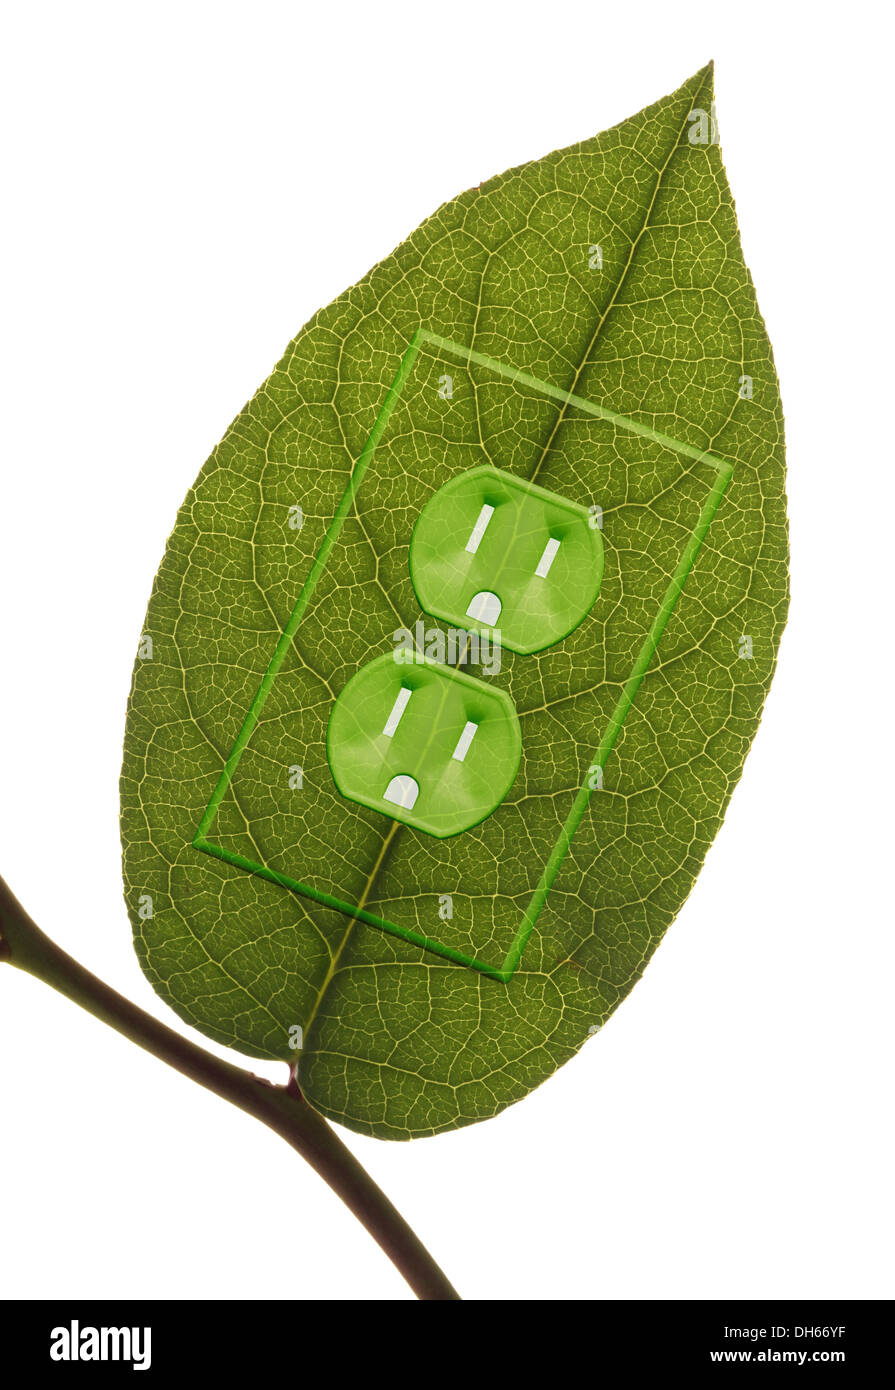 A green plant leaf on a branch with green colored electrical outlets added. - Stock Image